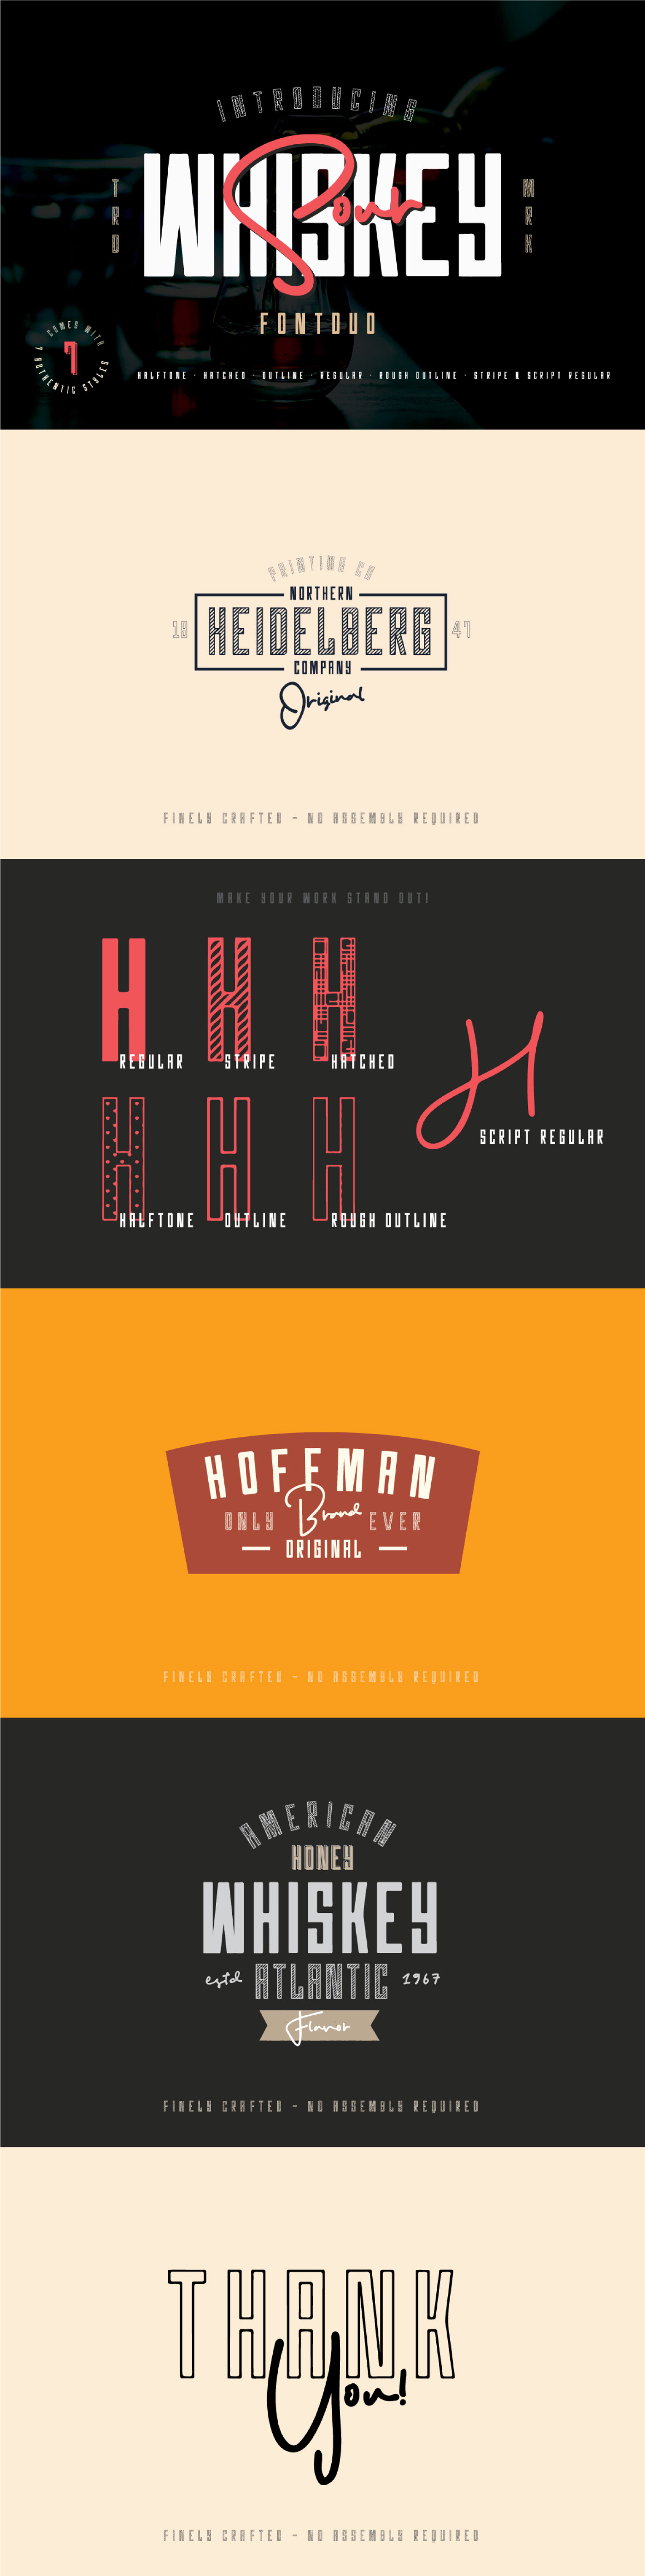 WHISKEY SOUR - FREE VINTAGE FONT DUO on Behance